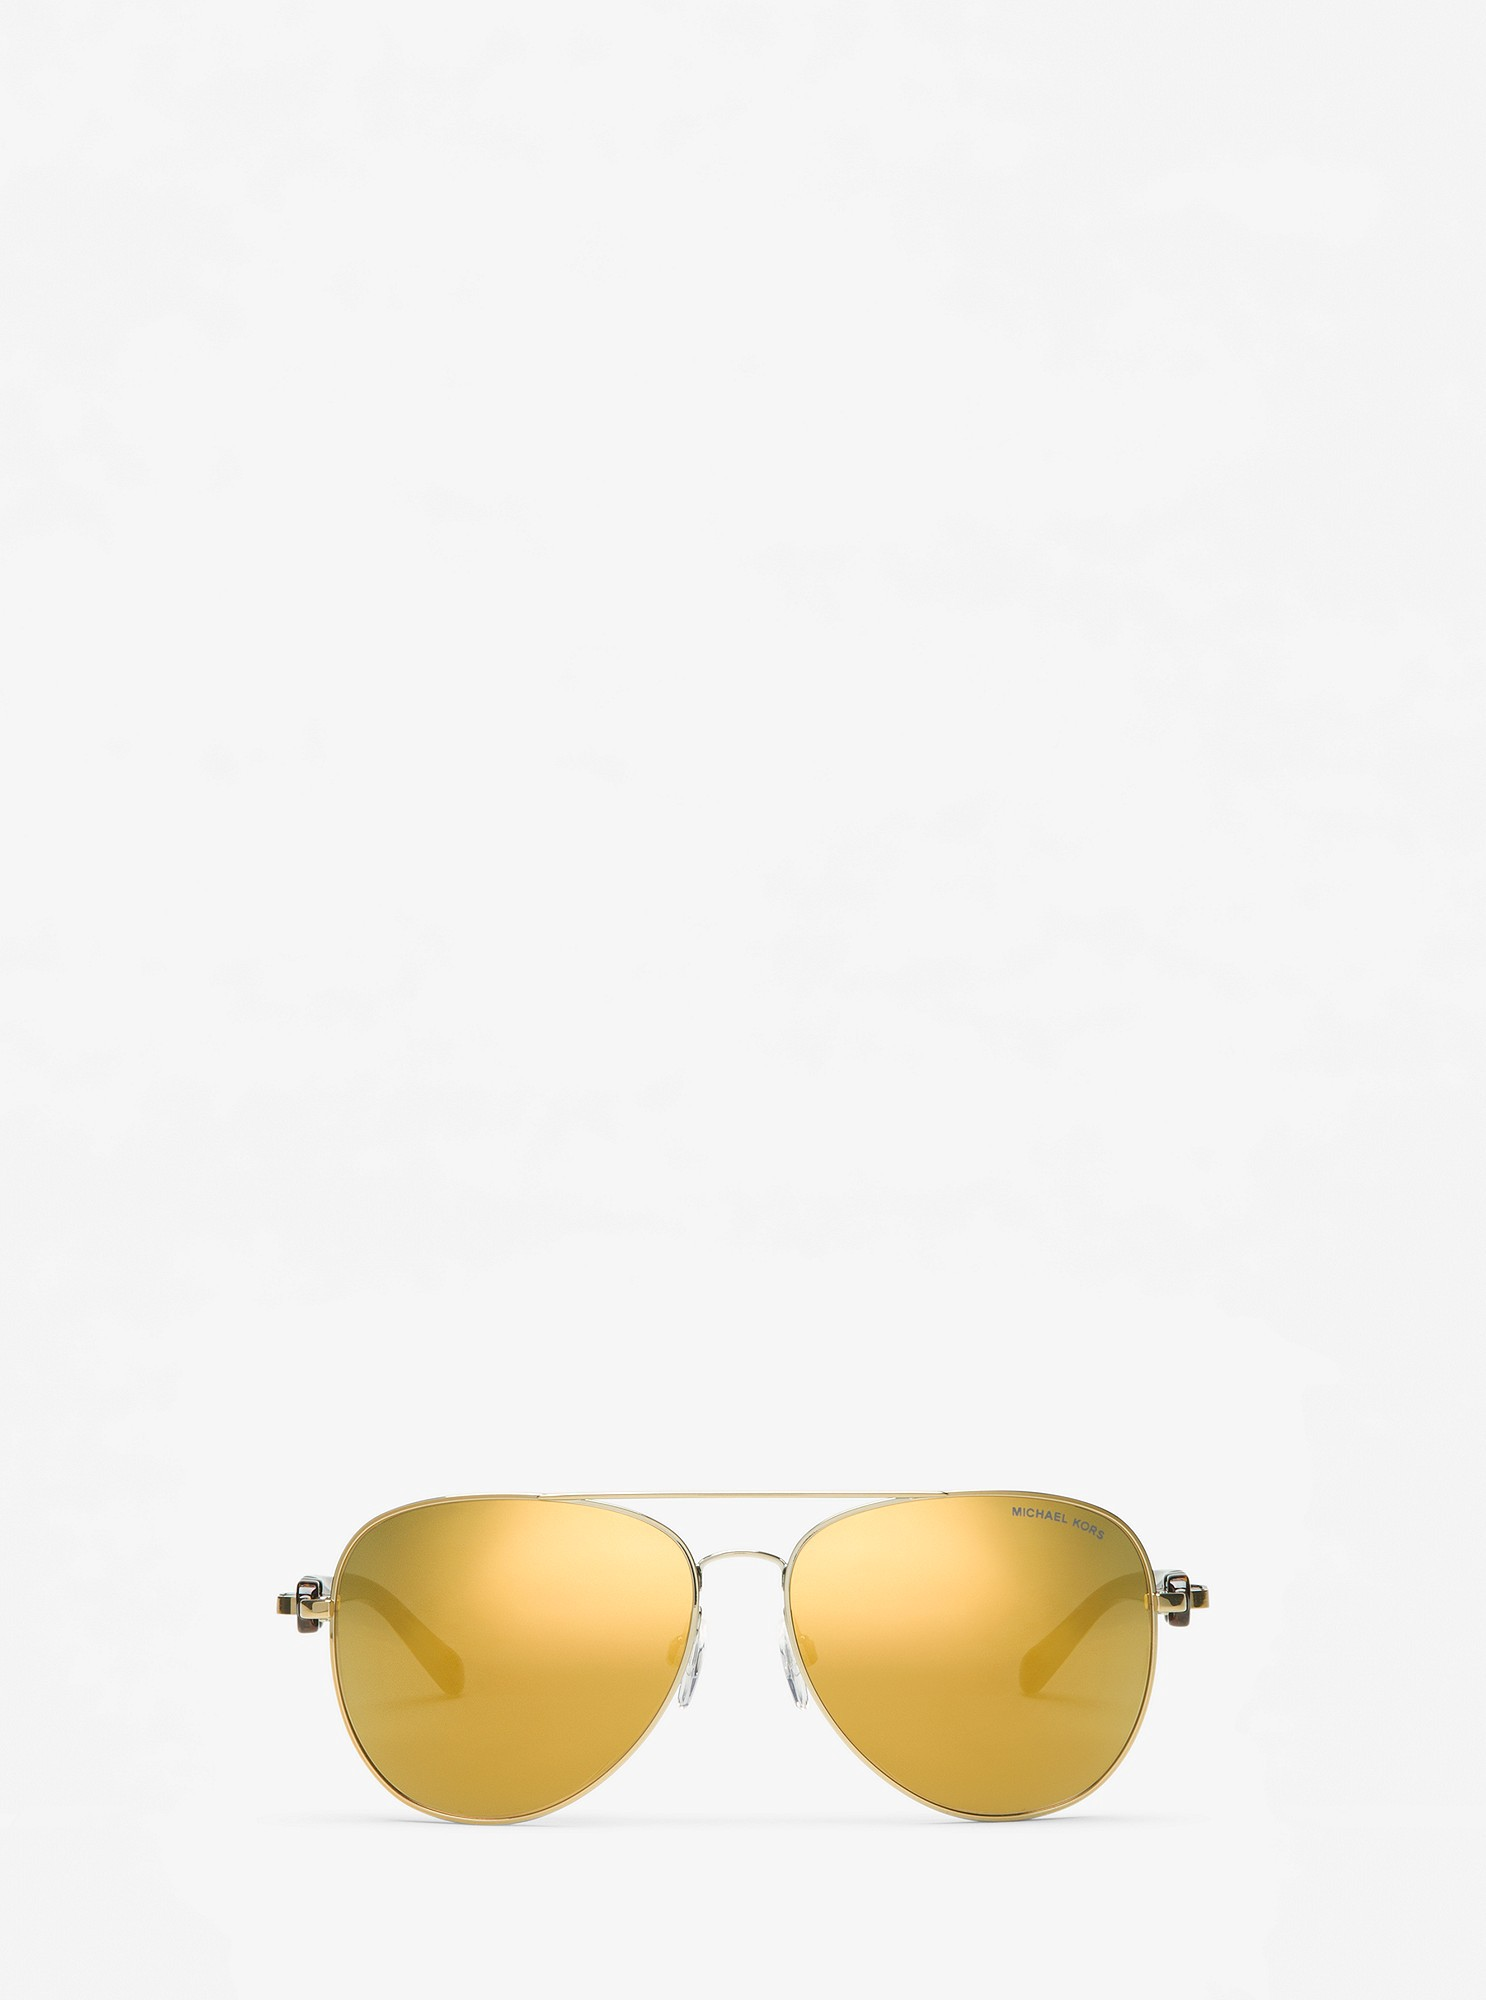 811cc2fdf4f Pandora Sunglasses by Michael Kors in 2018